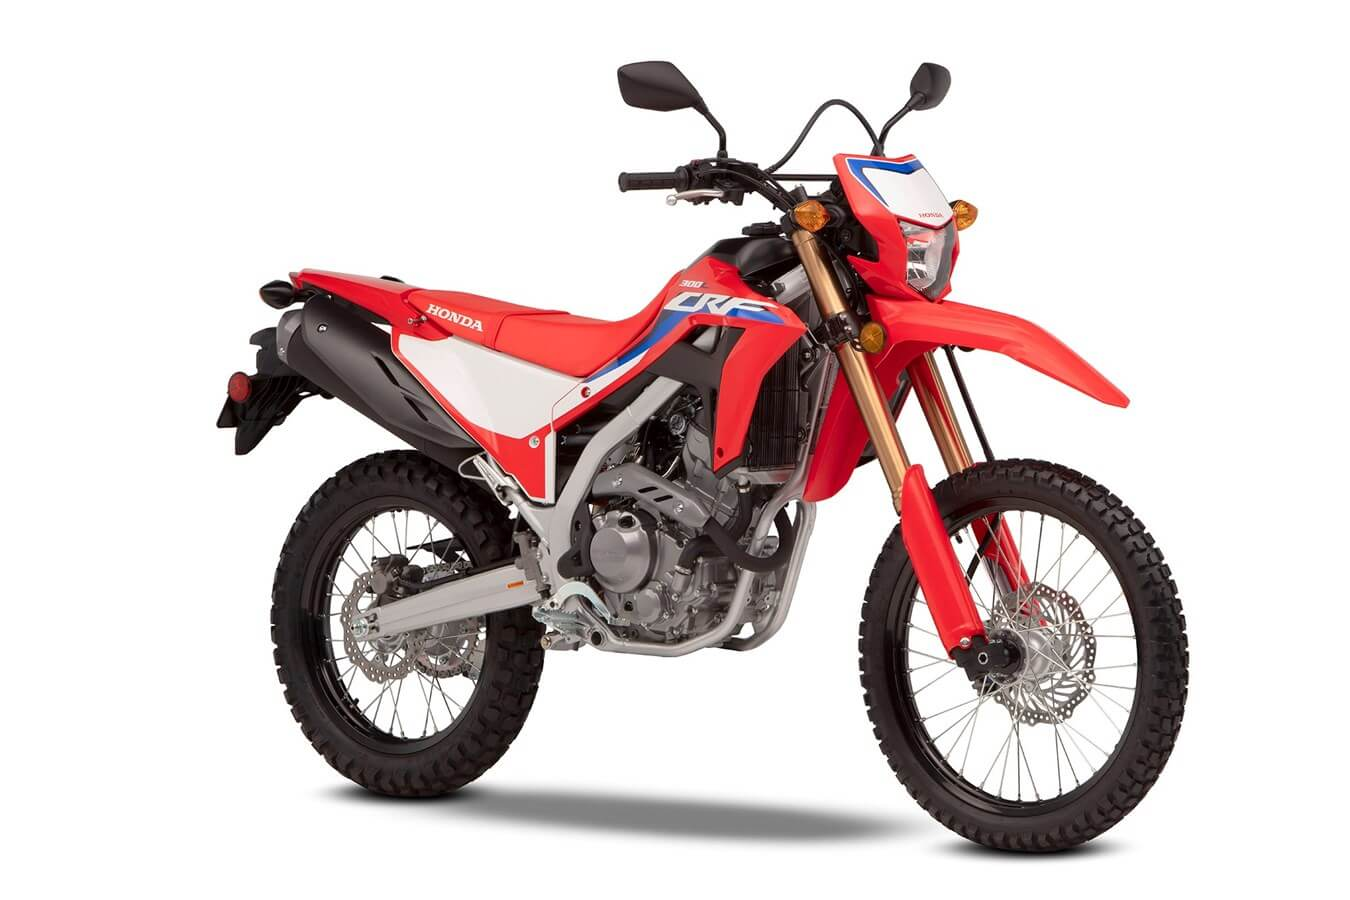 2021 Honda CRF300L USA Review / Specs + NEW Changes Explained!